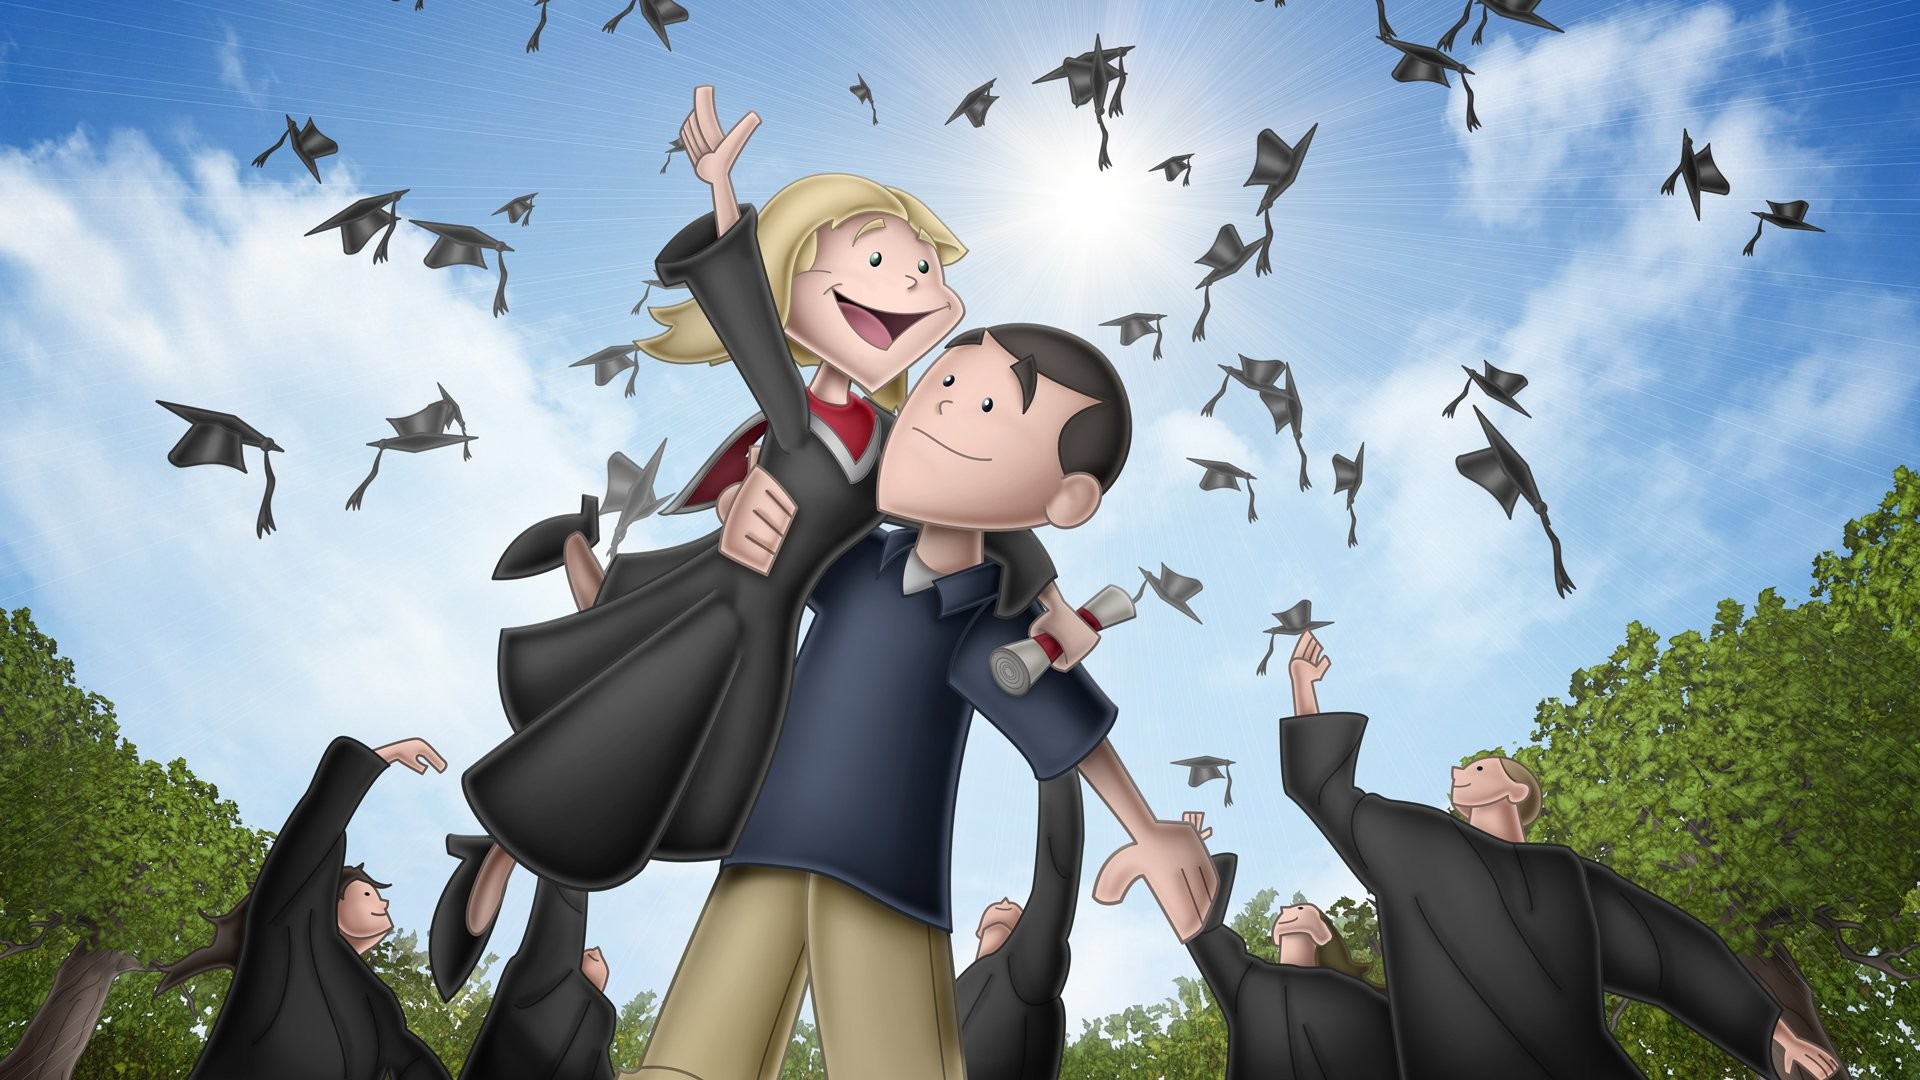 Awesome Graduation Images Collection: Graduation Wallpapers